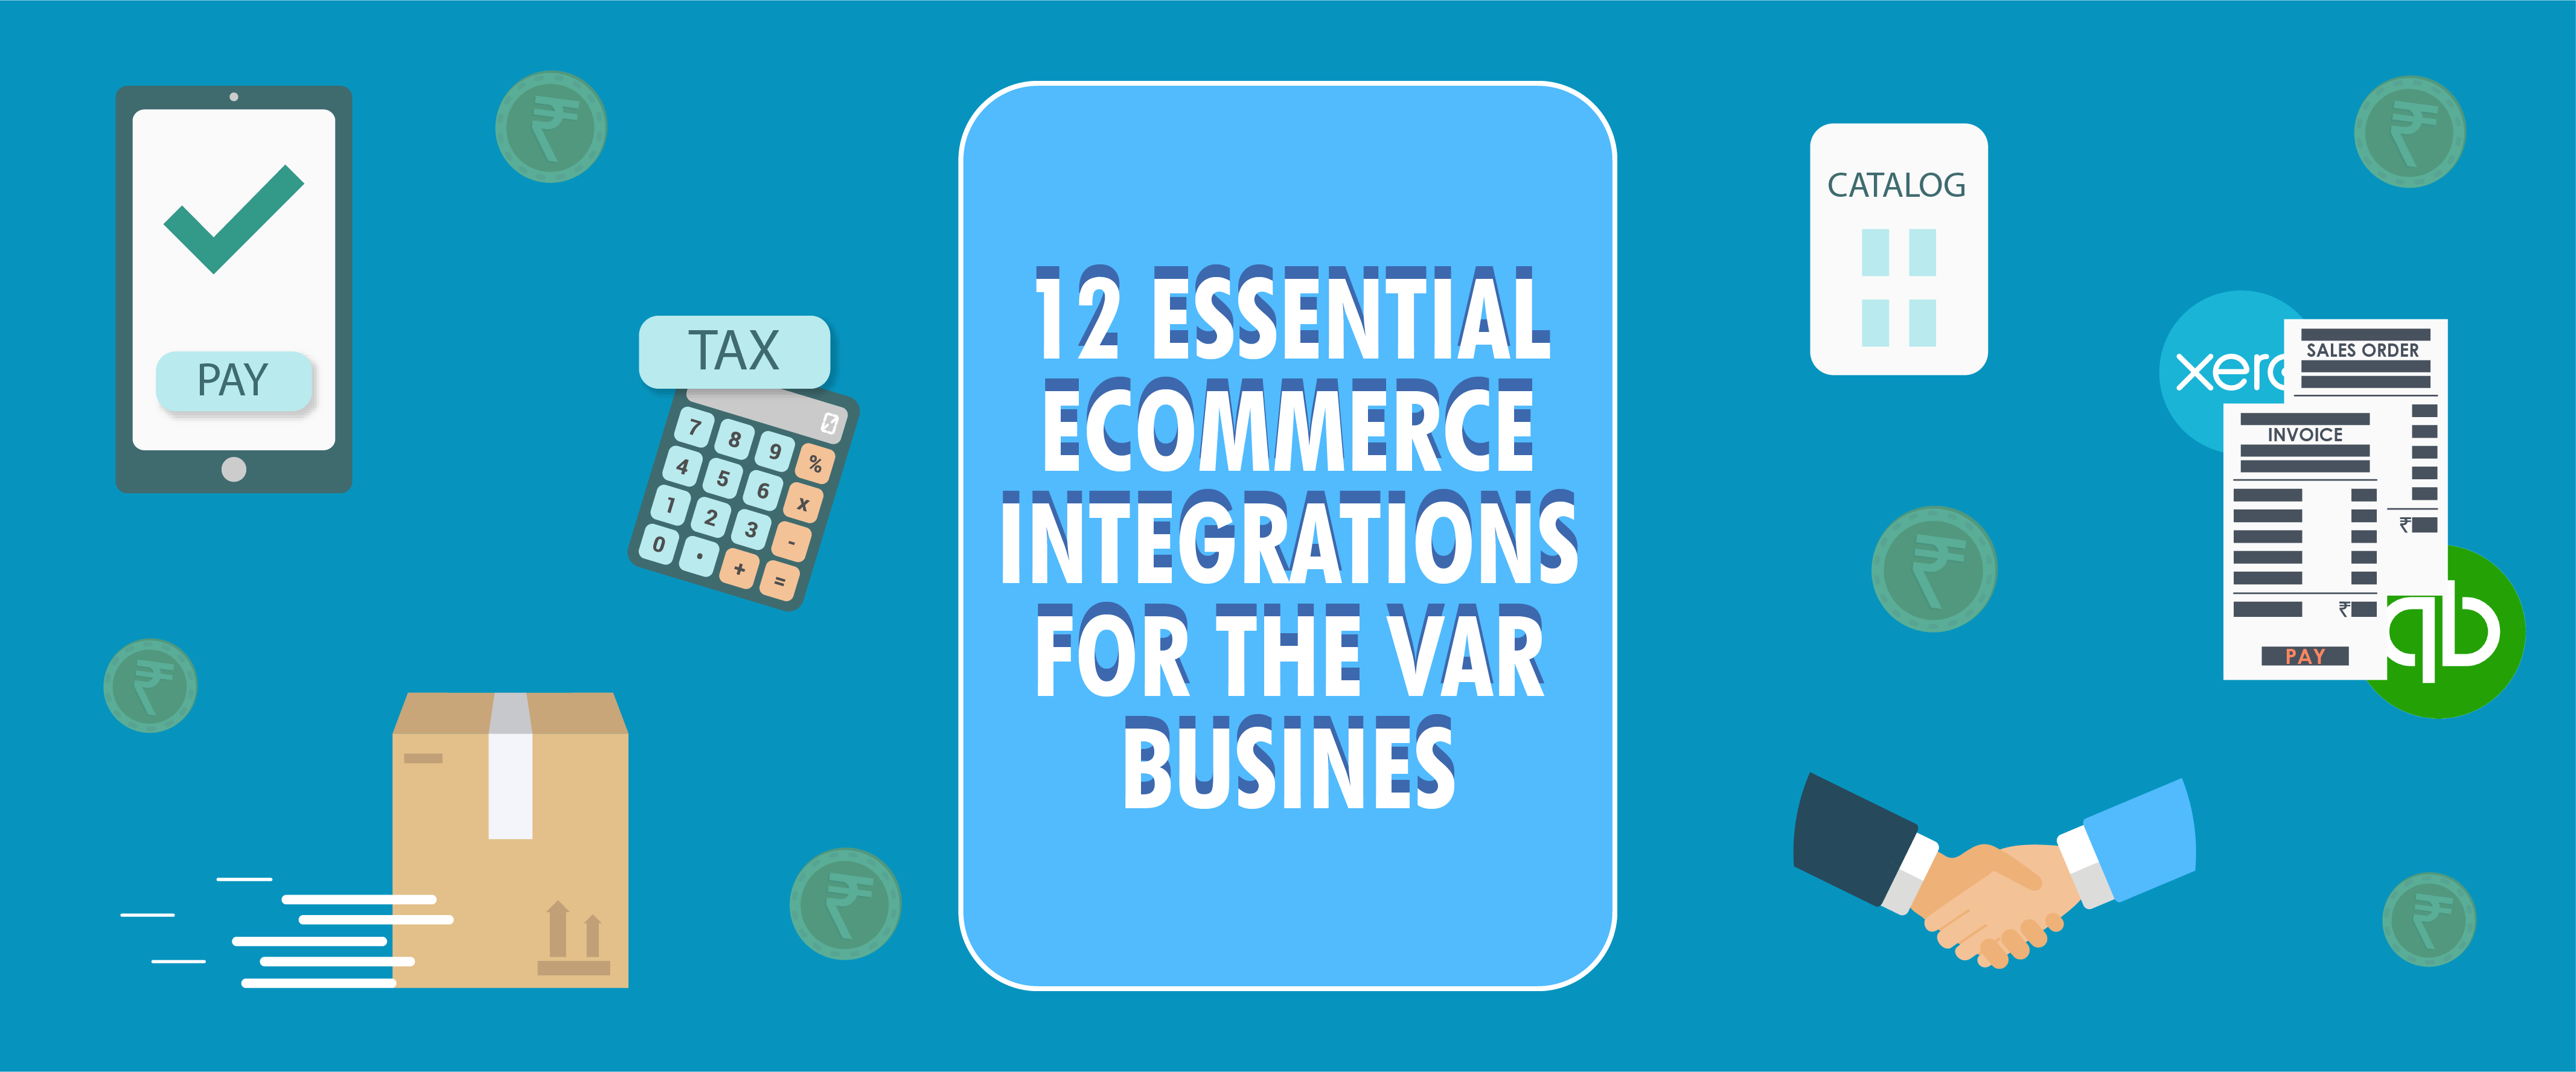 Top 12 Essential eCommerce Integrations for the VAR Business